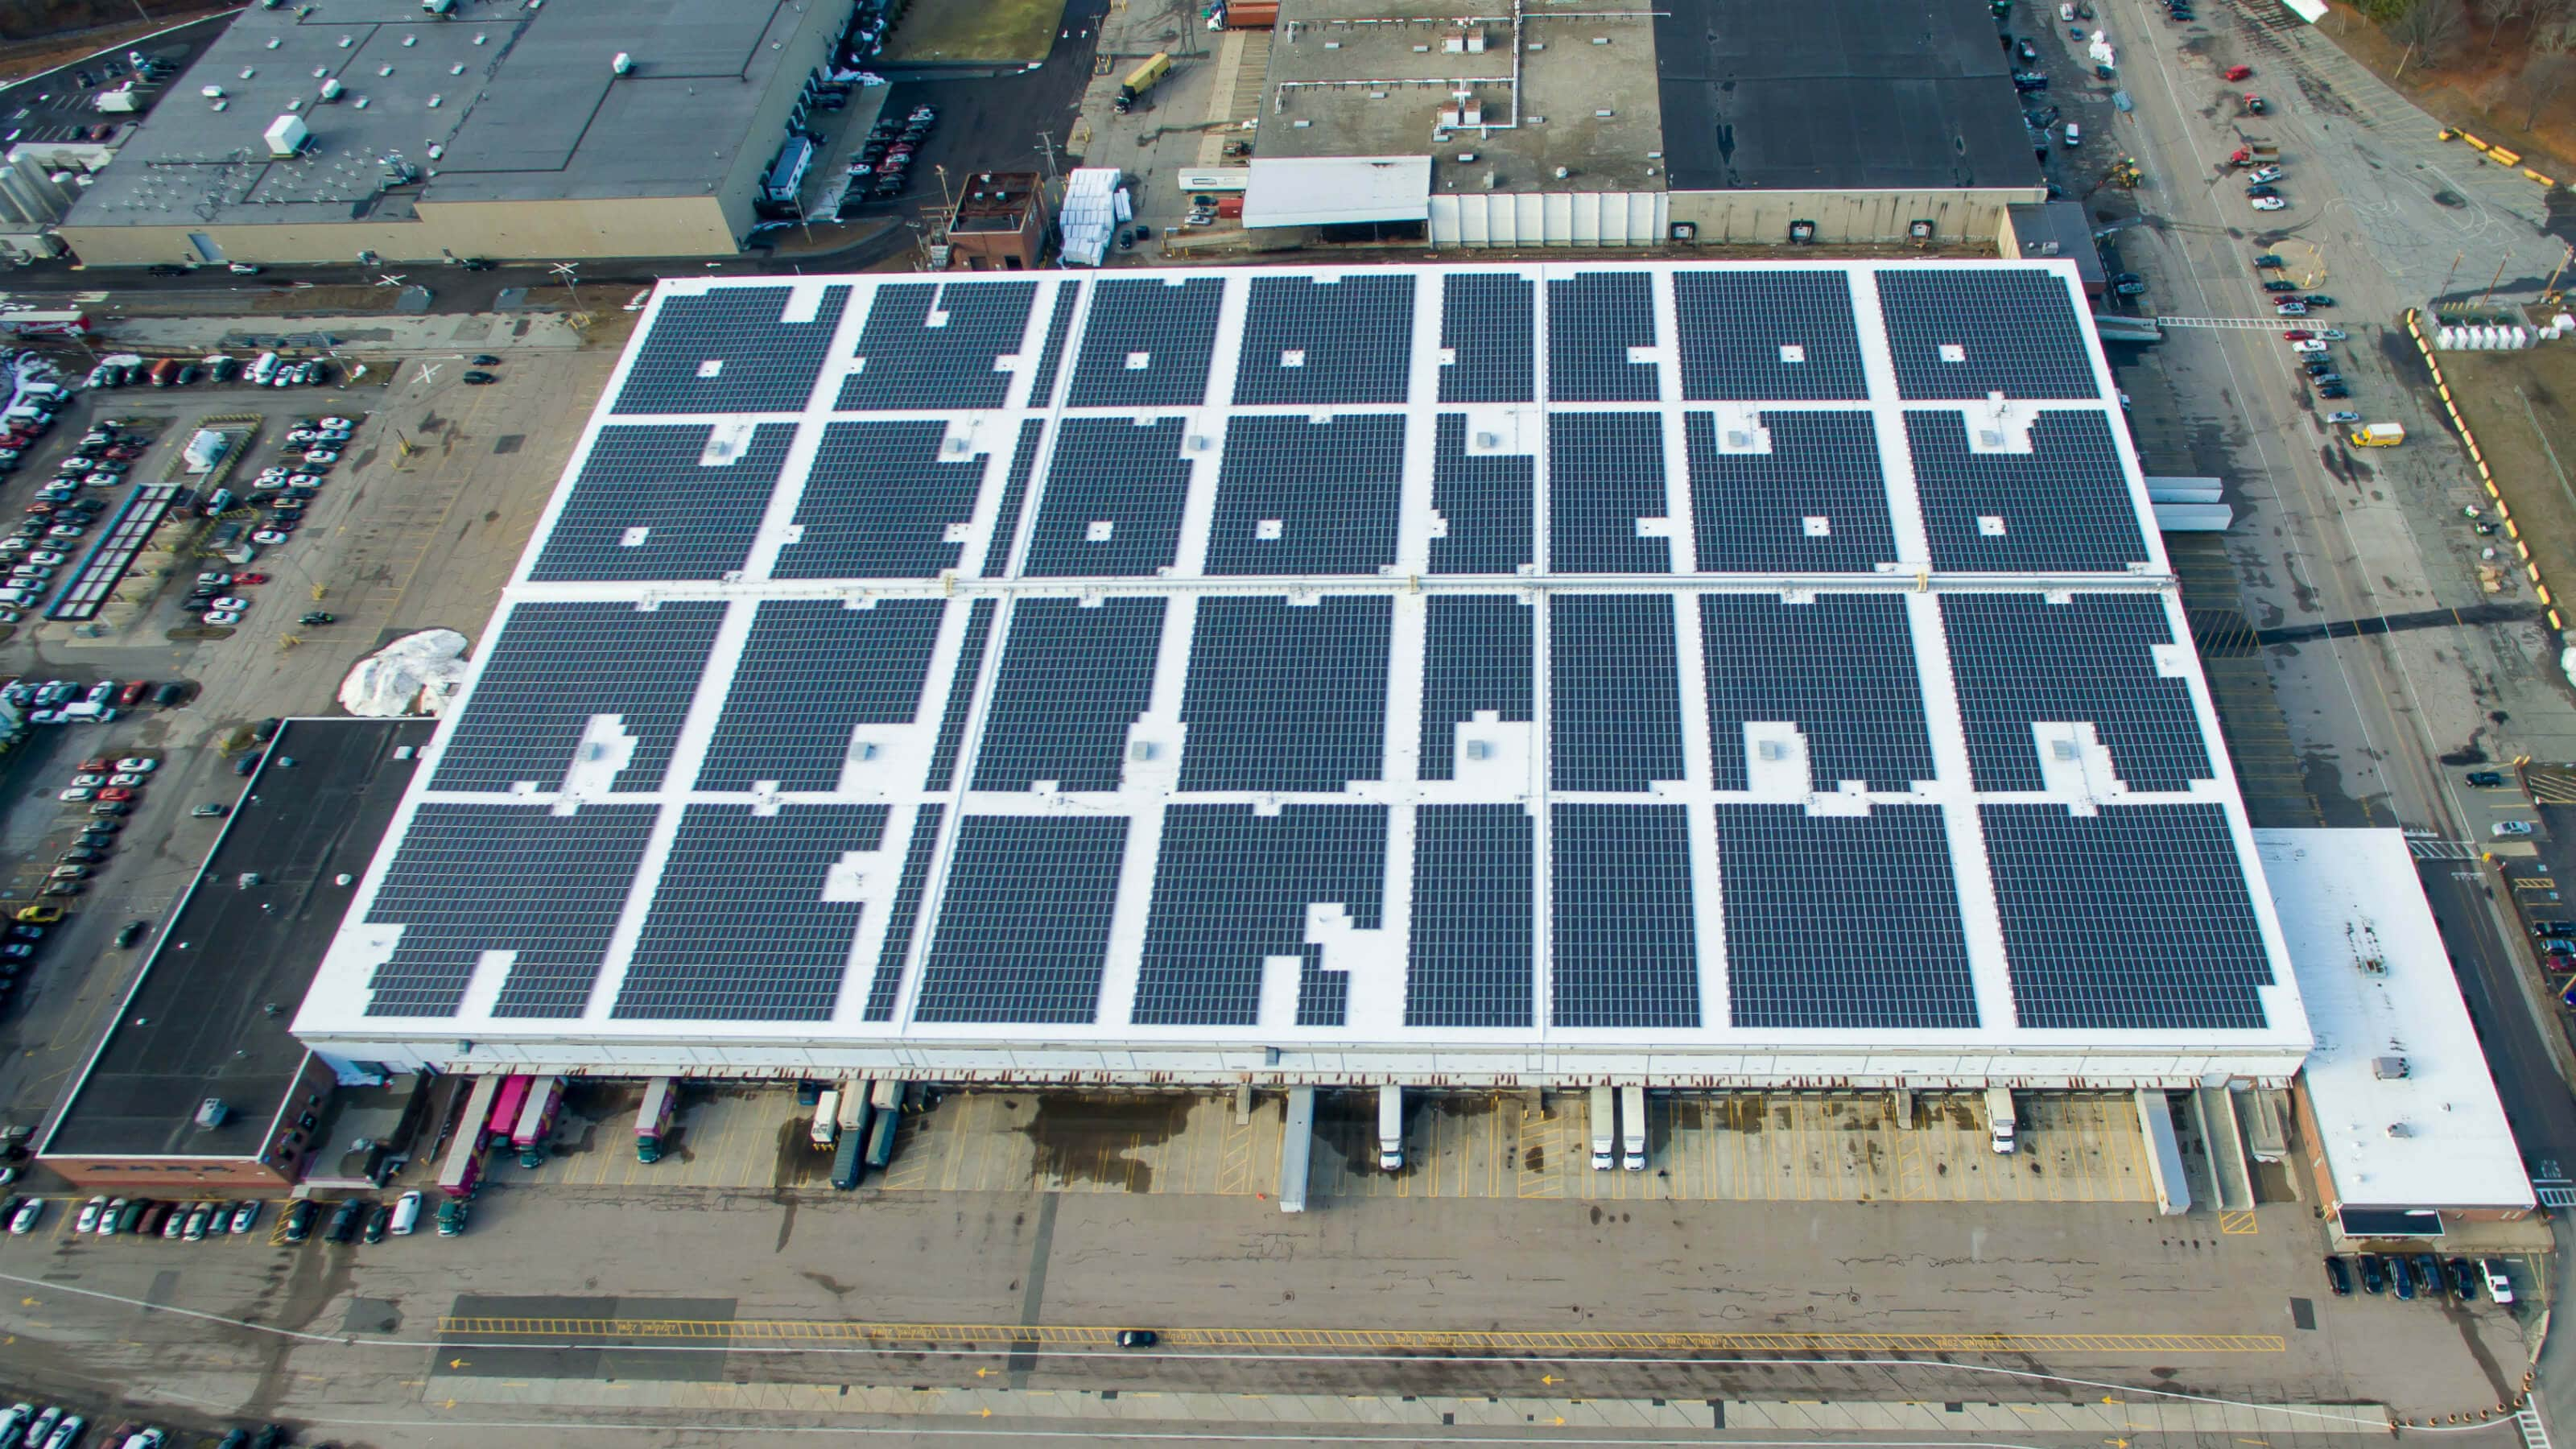 Borrego UMass Boston To Save Up To $5M With Solar Contract